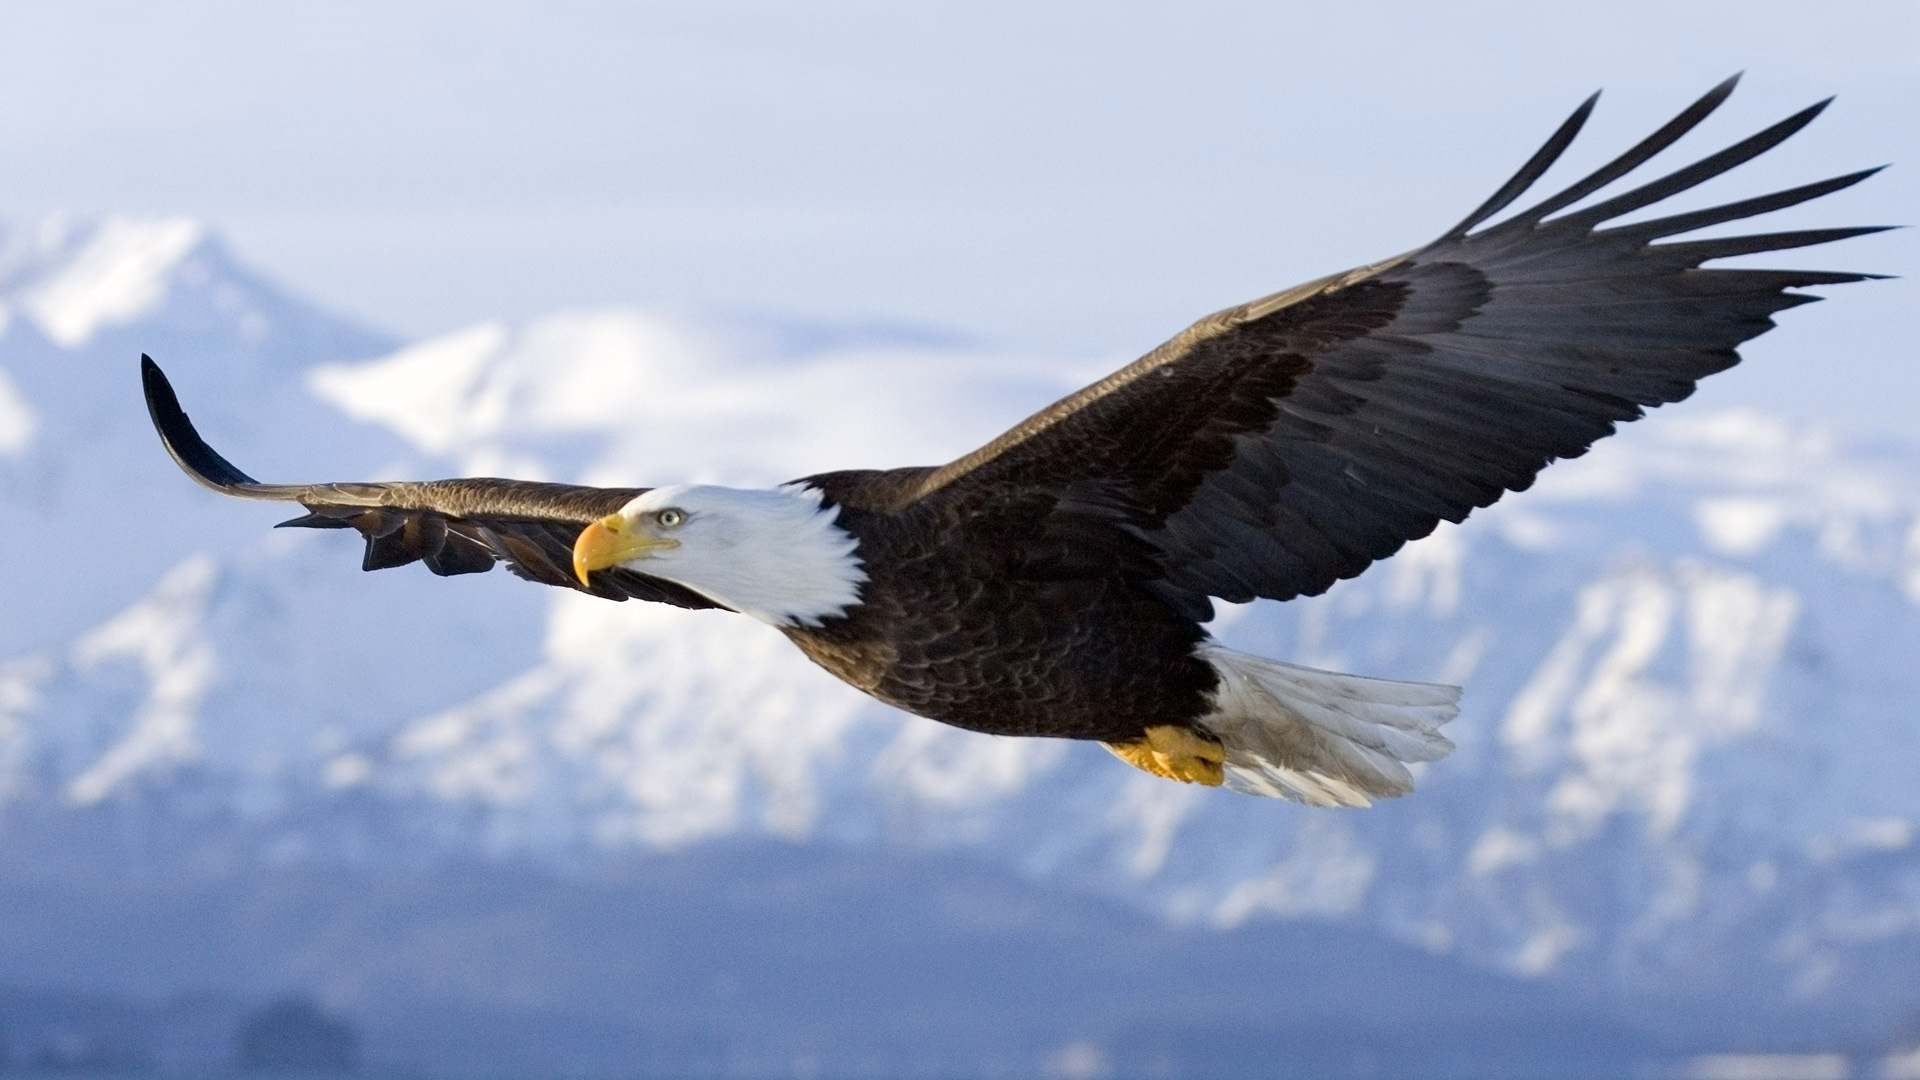 A**hole Stole A Bald Eagle Specimen At IU On Memorial Day Weekend   10Worthy